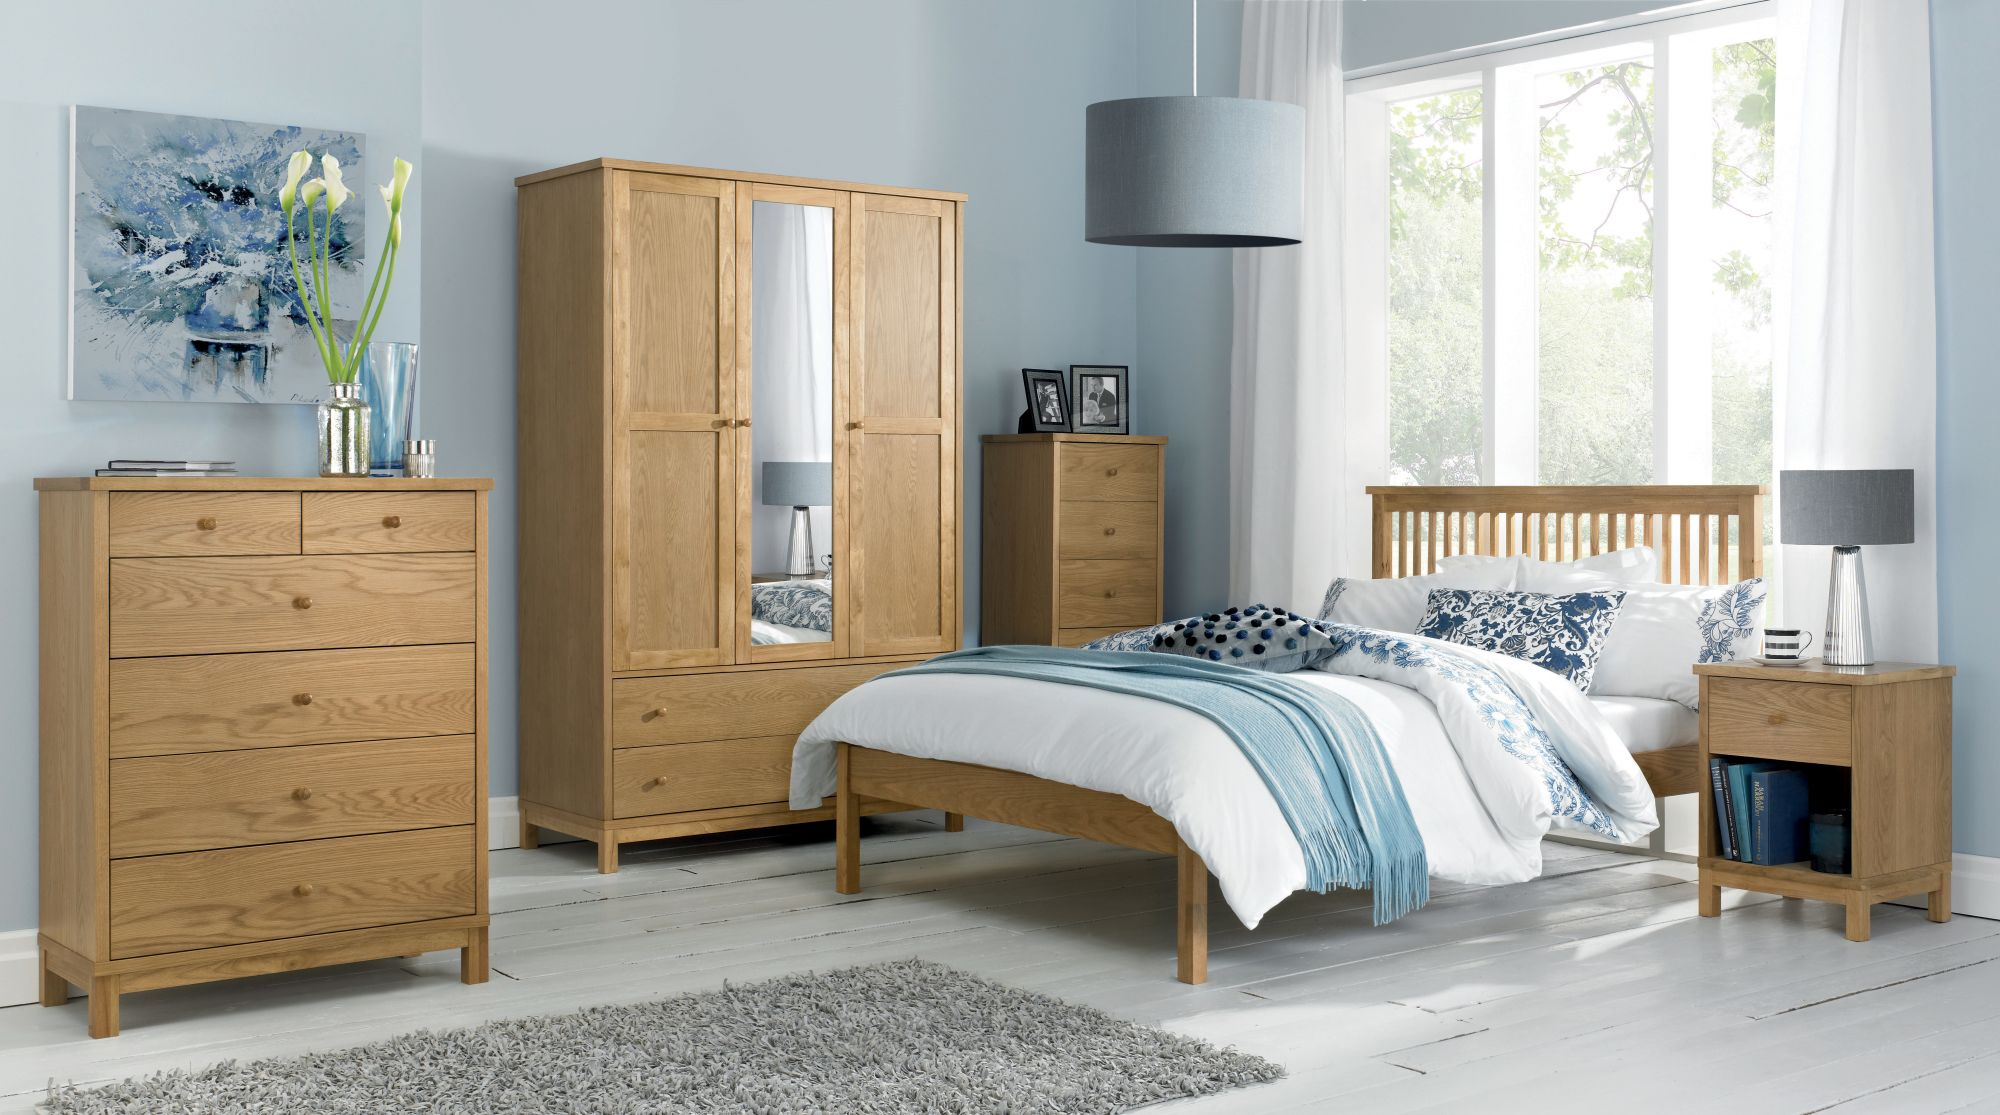 Conall Oak Lowend Bed Frame